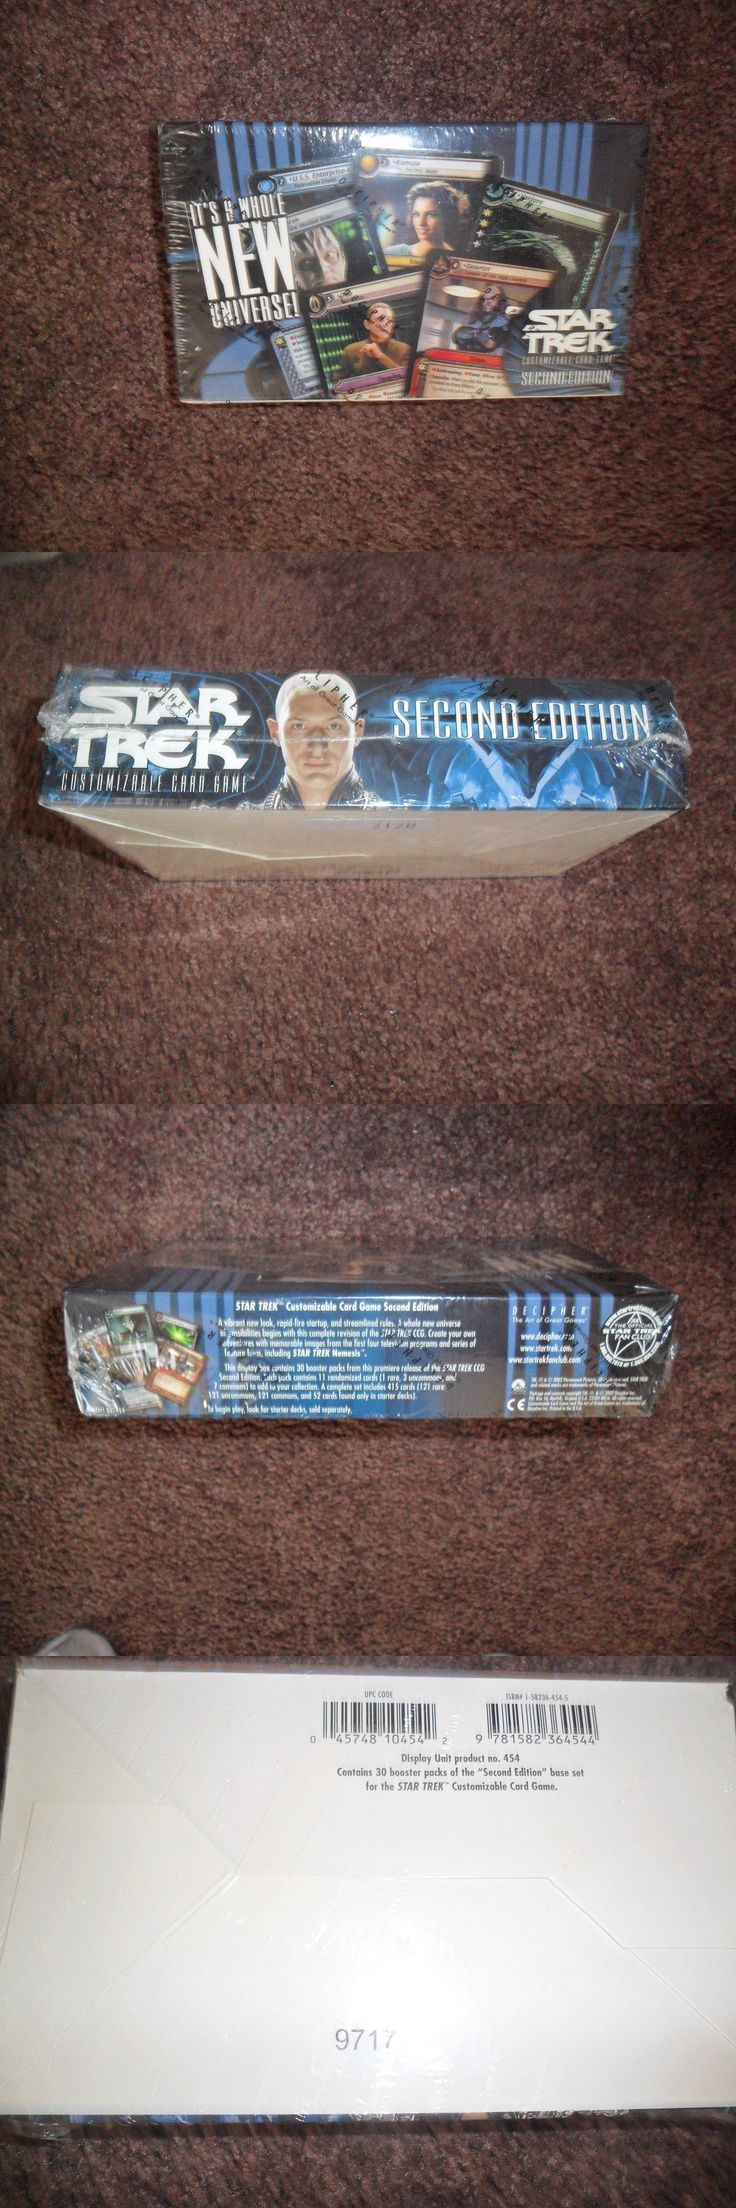 CCG Individual Cards 183454: Star Trek Ccg 2E : It S A Whole New Universe Booster Box Factory Sealed -> BUY IT NOW ONLY: $41.99 on eBay!